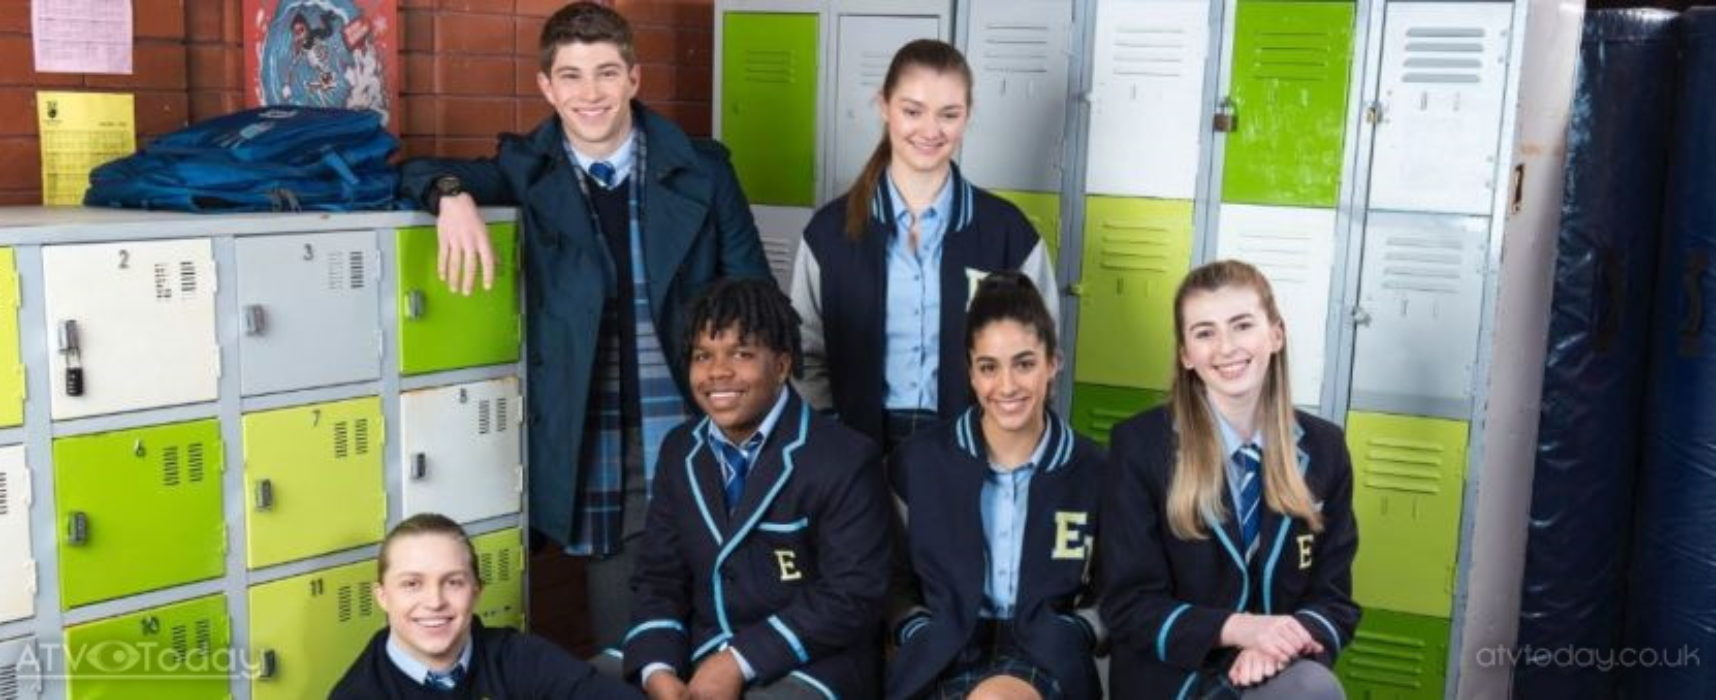 Neighbours spin-off to focus on high schoolers